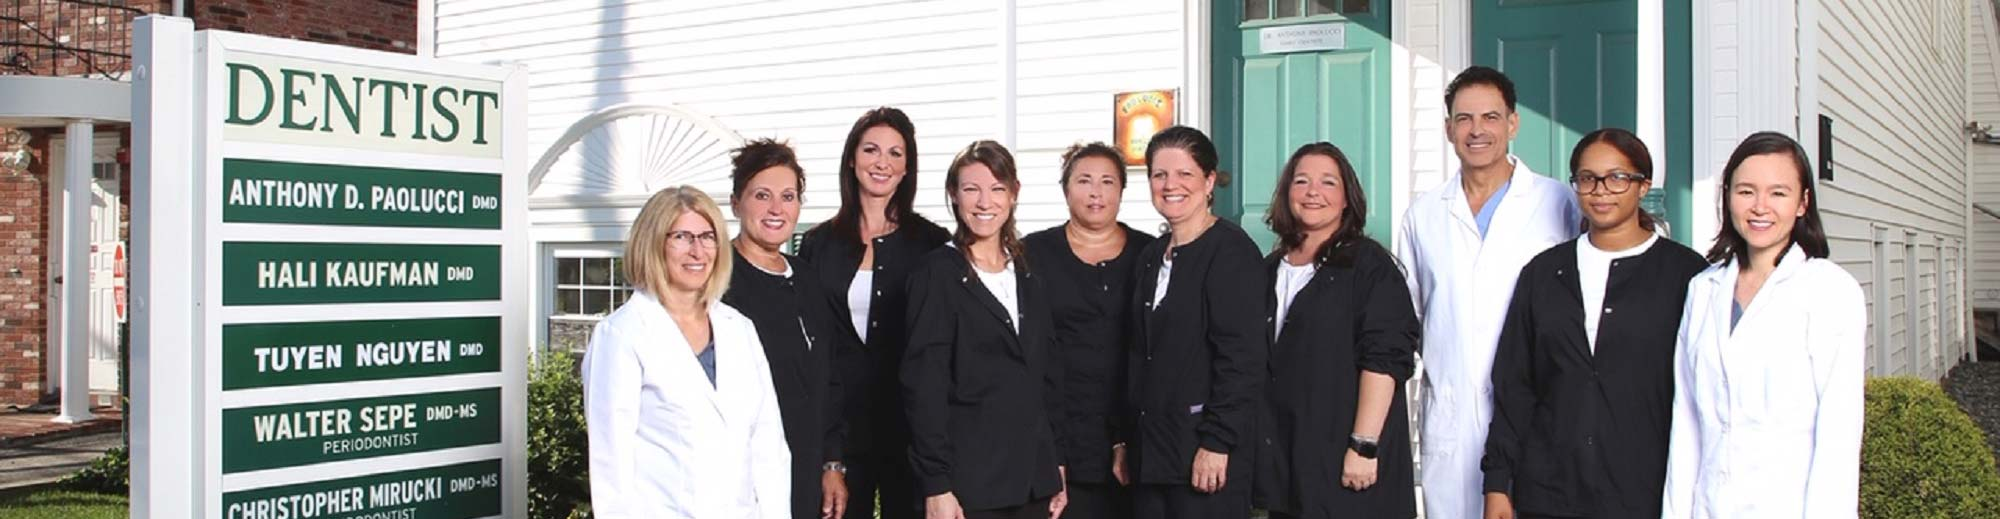 Paolucci Family Dentists | Dentist Providence RI